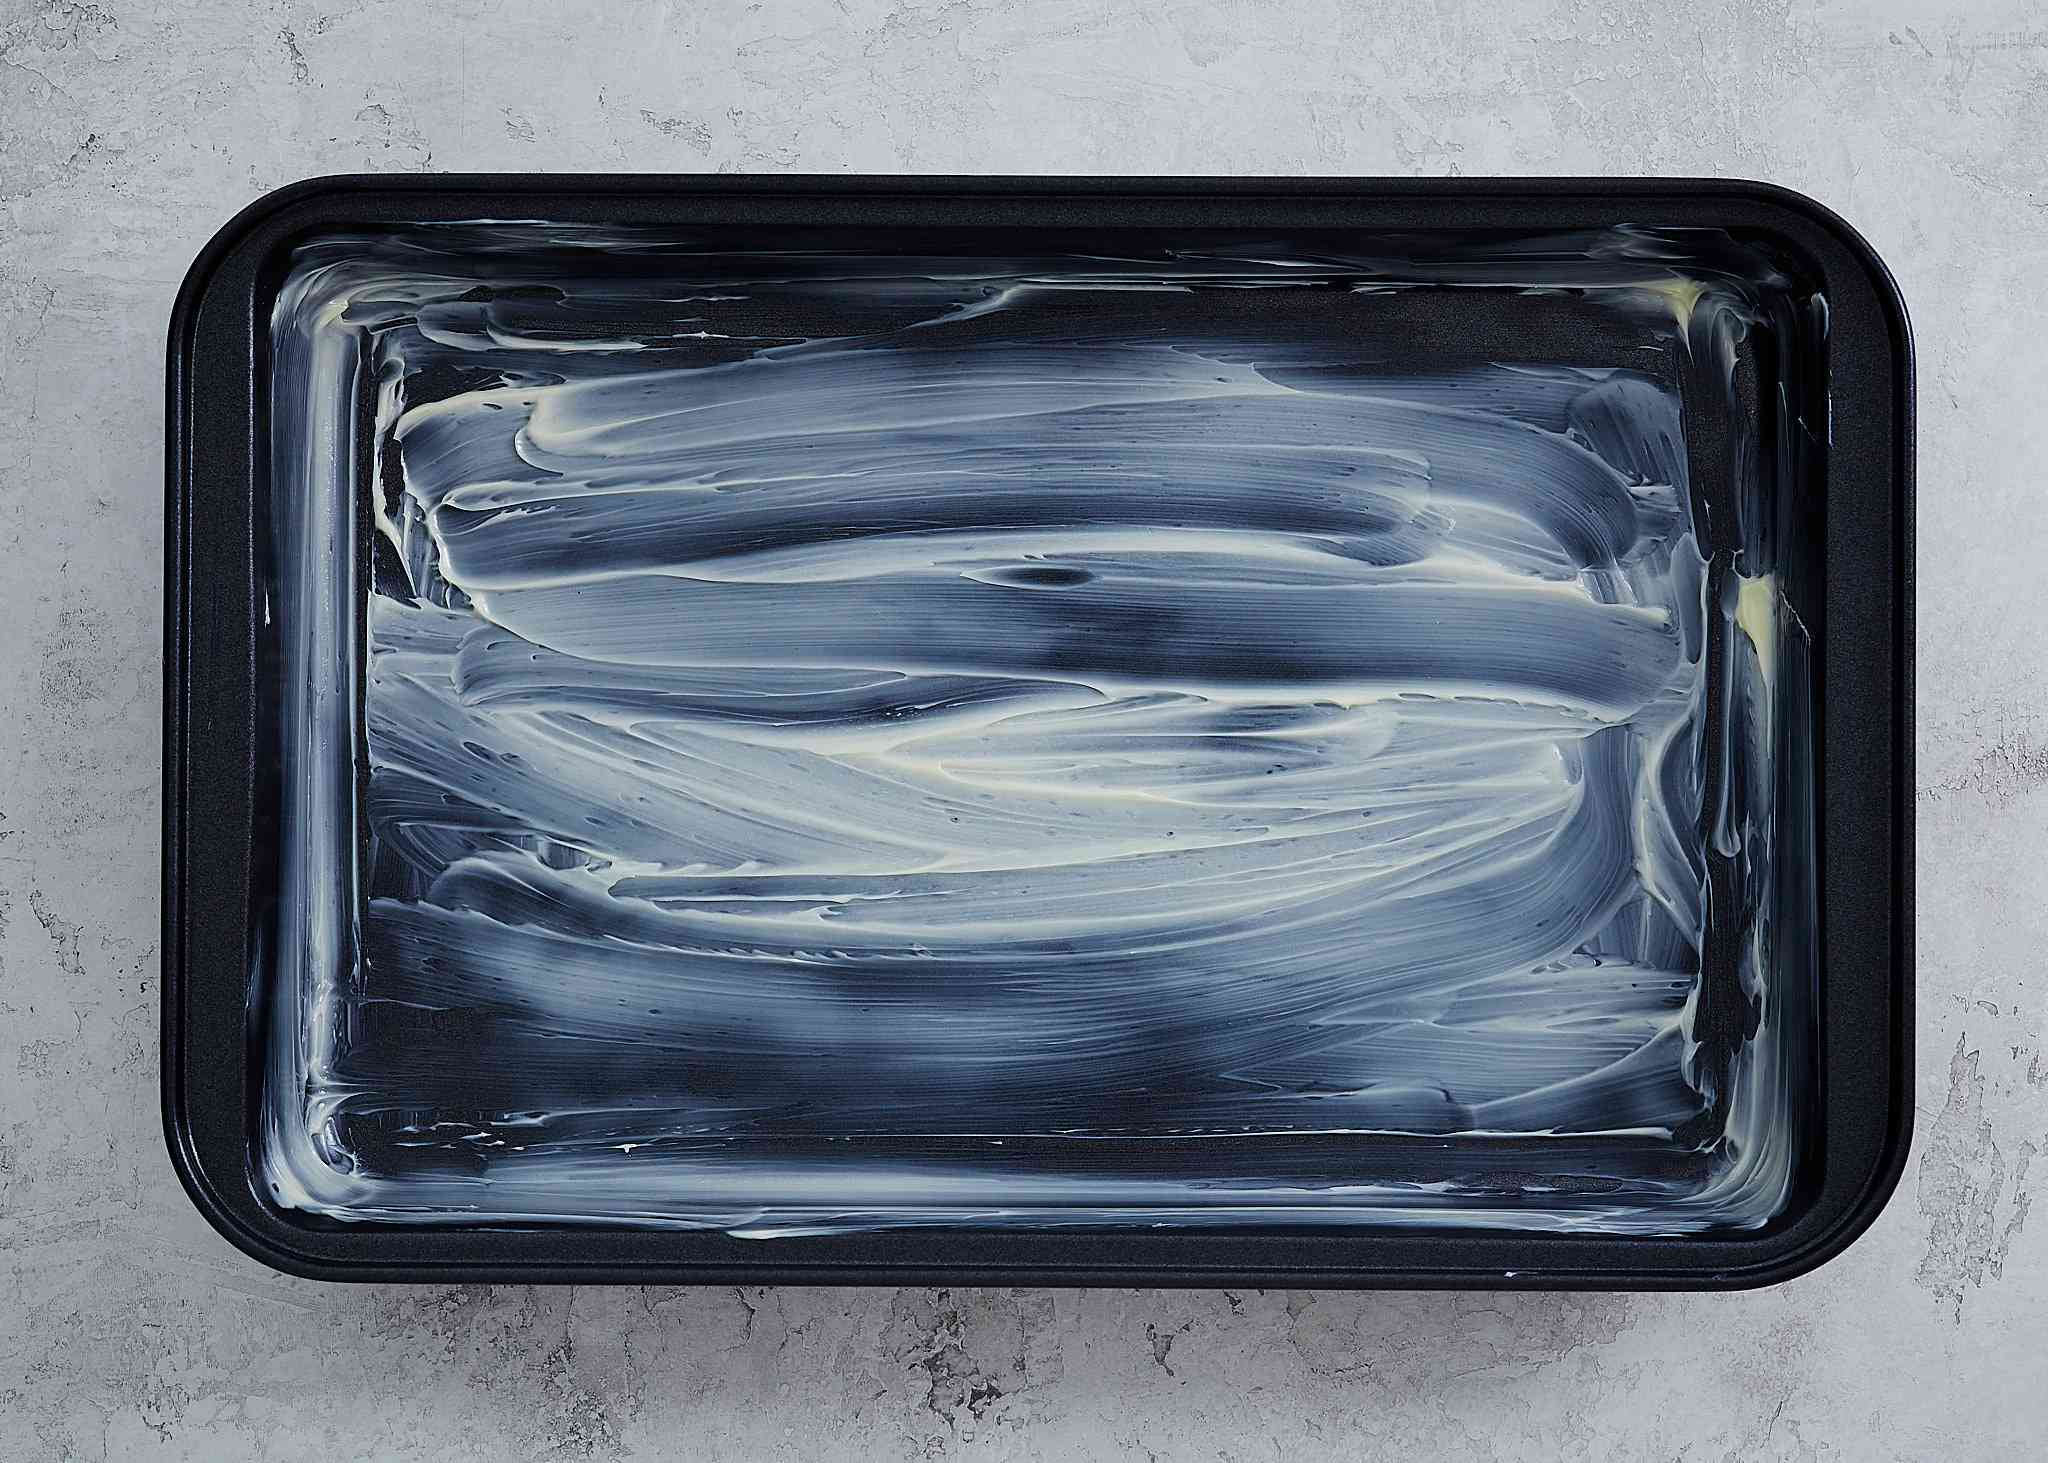 buttered / greased baking pan